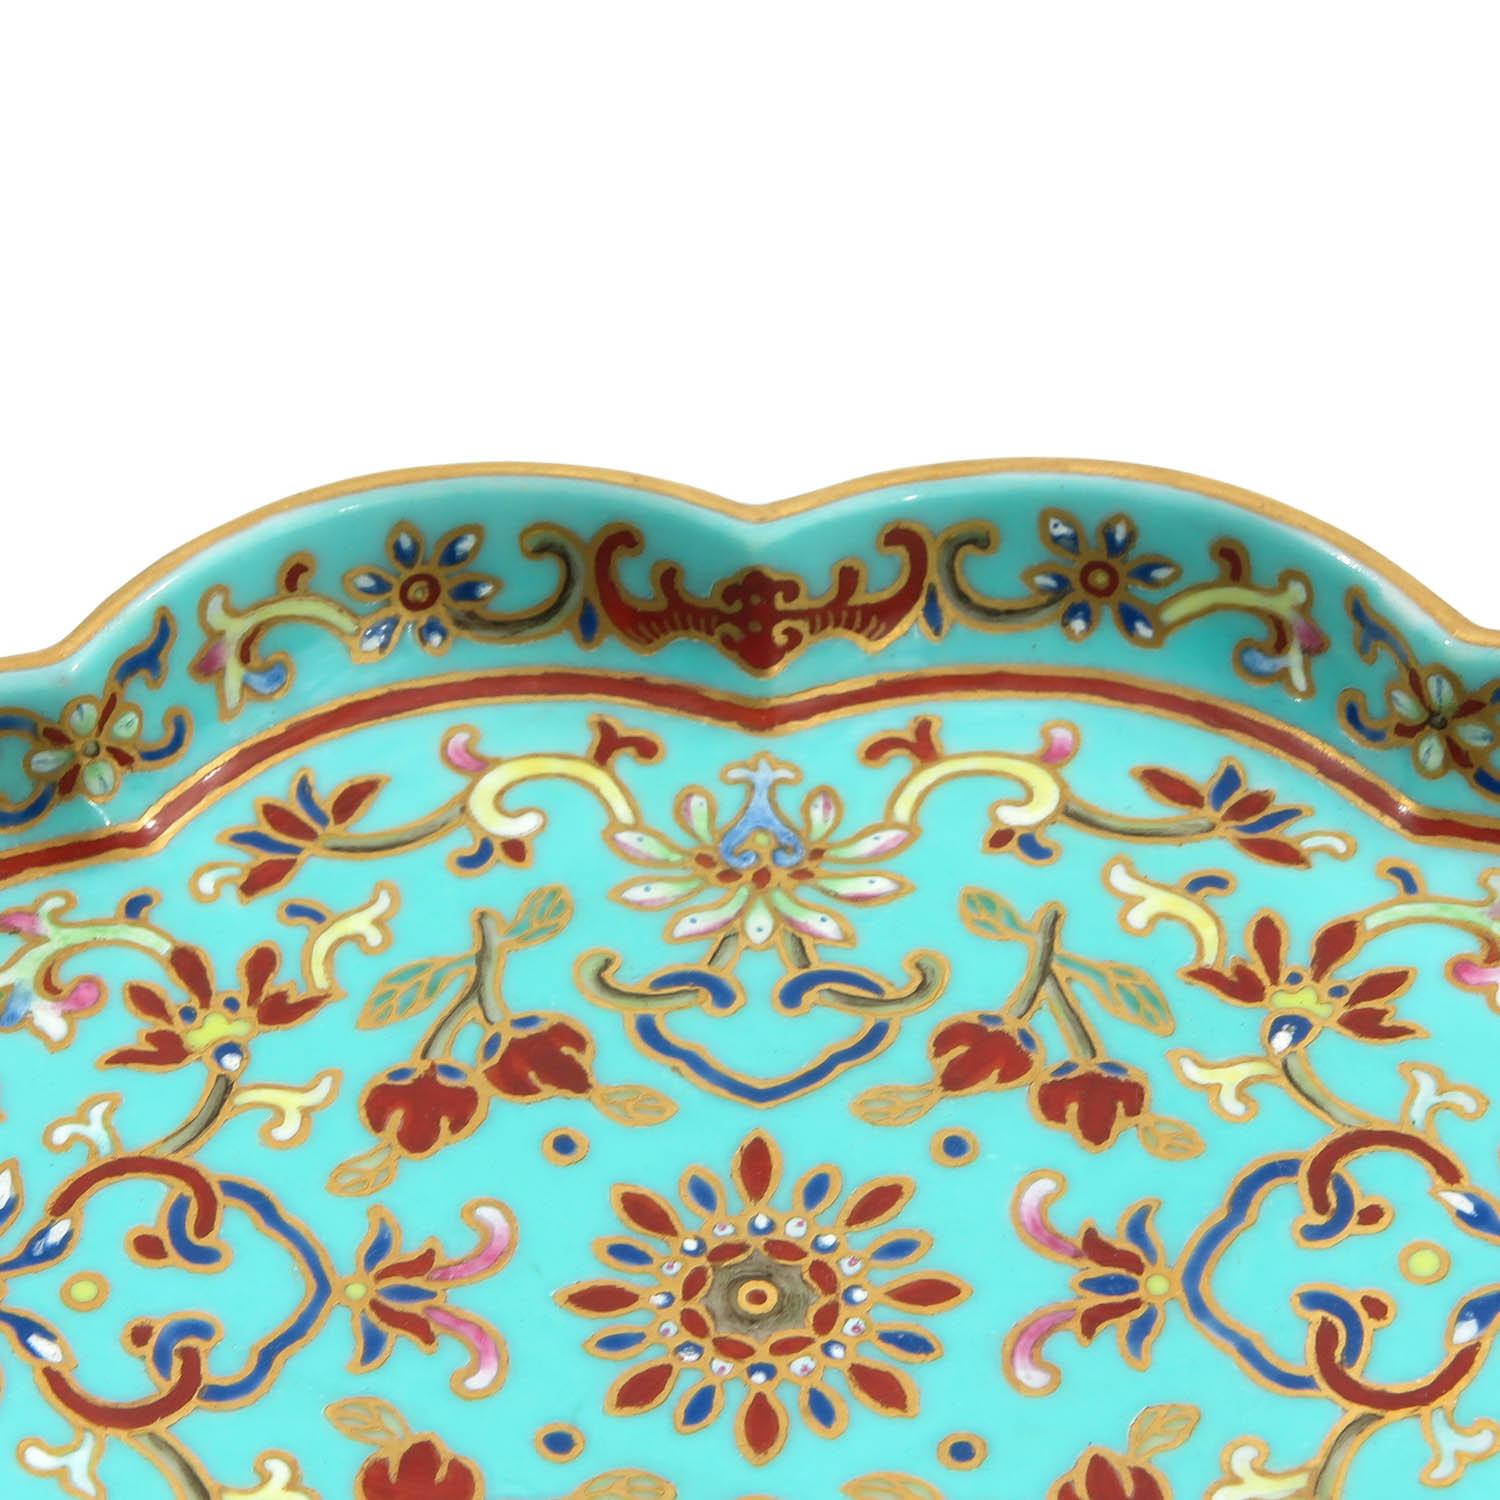 A Small Polychrome Tray - Image 3 of 8